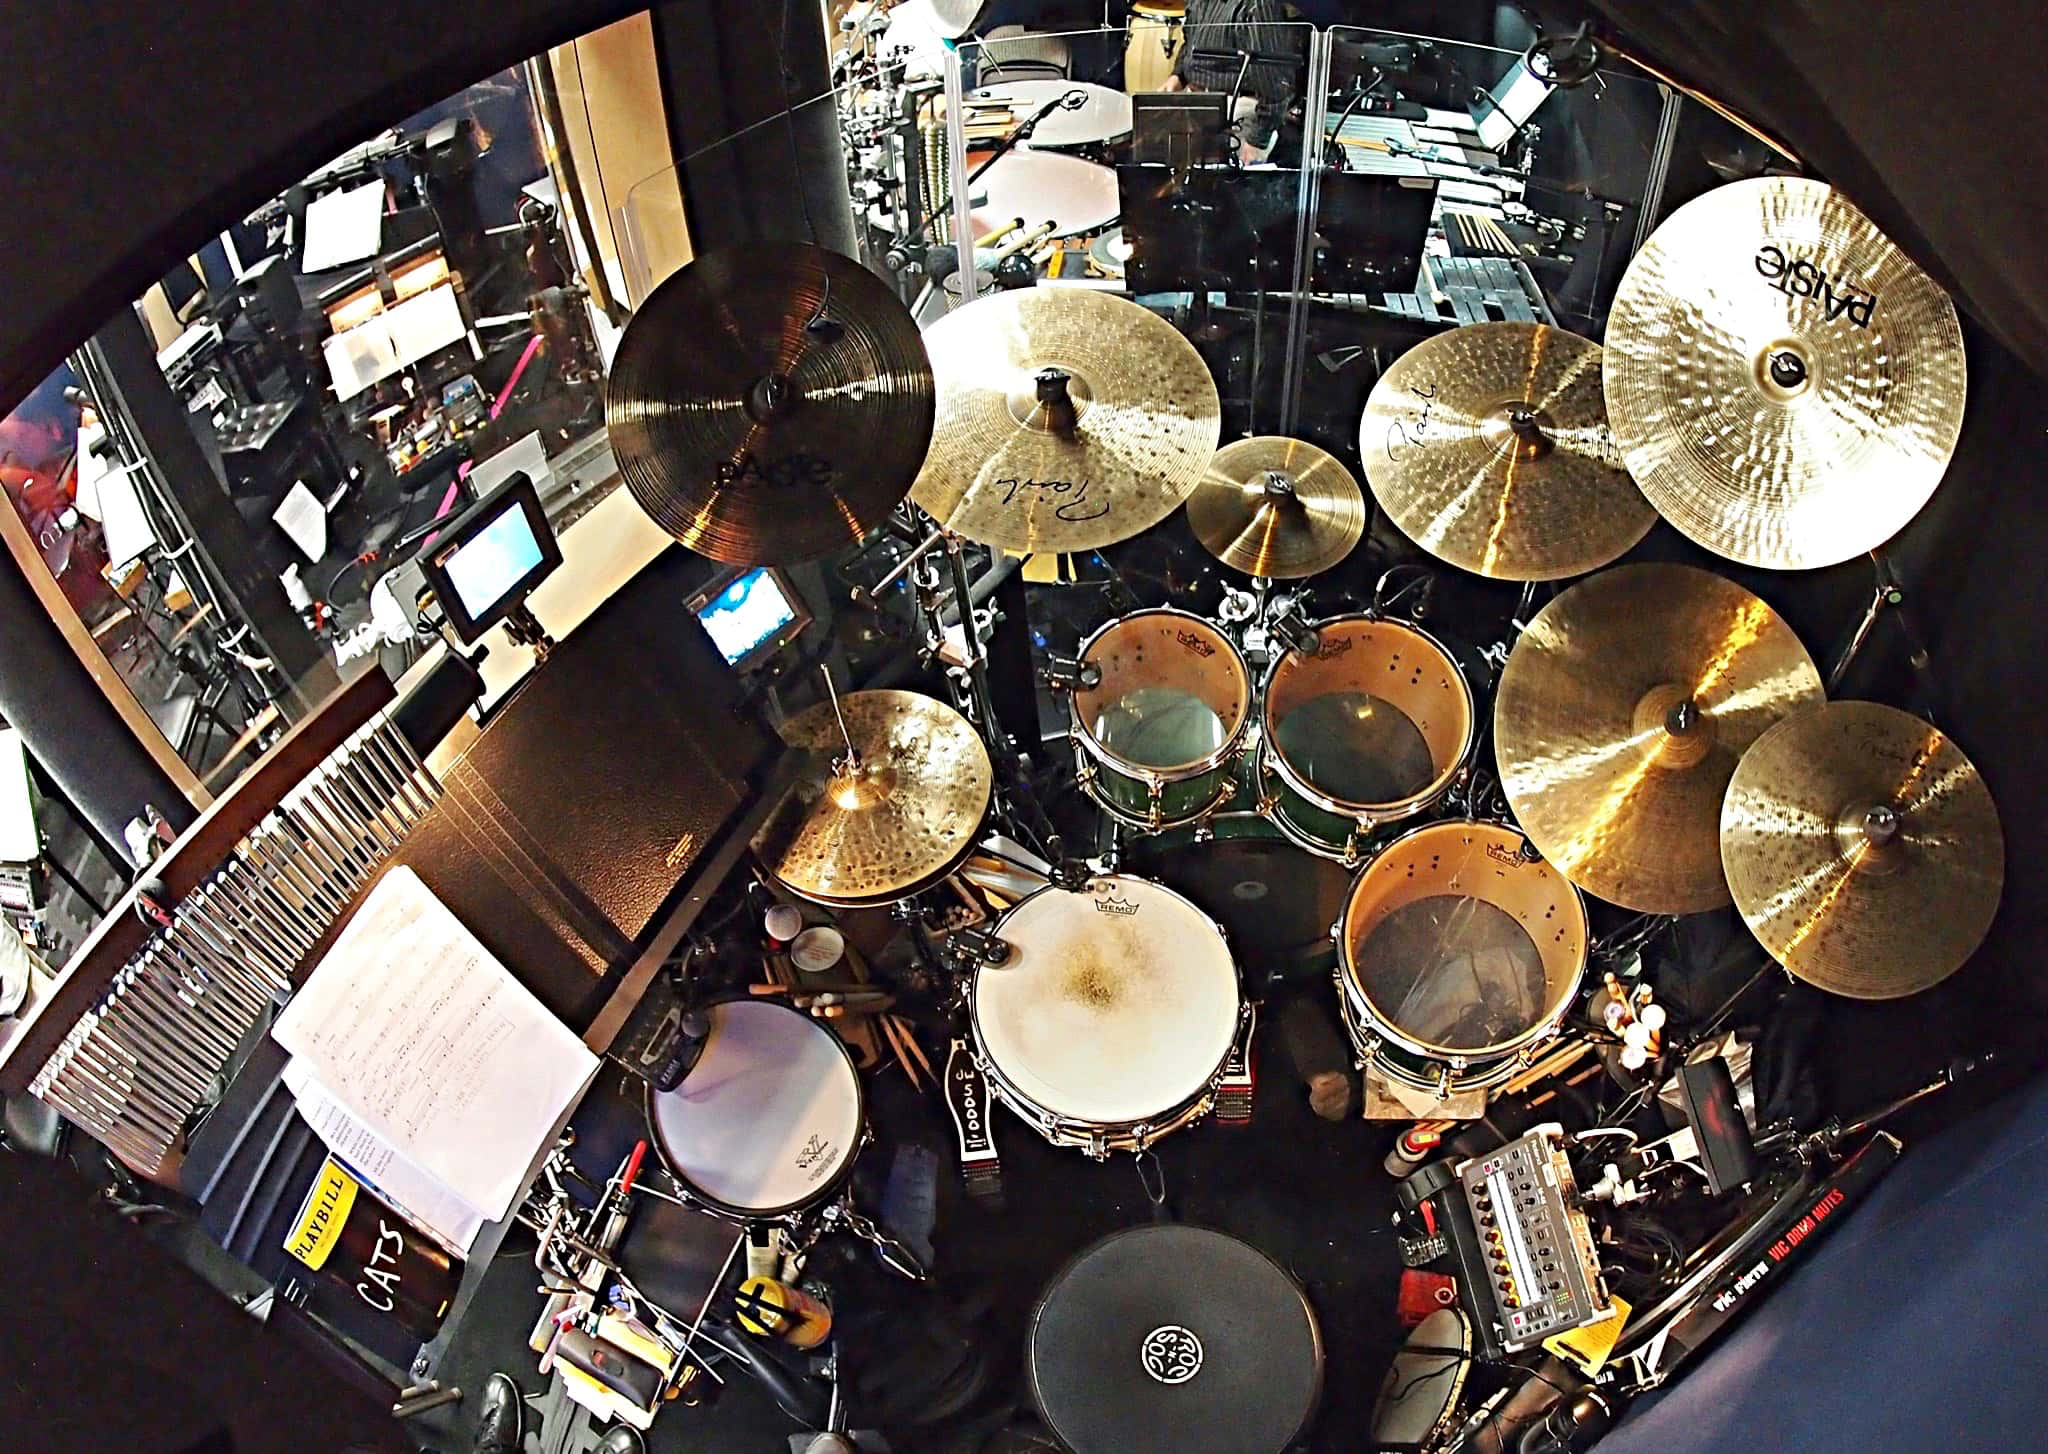 Bill Lanham's drum set setup for the Broadway revival of Cats at the Neil Simon Theatre.